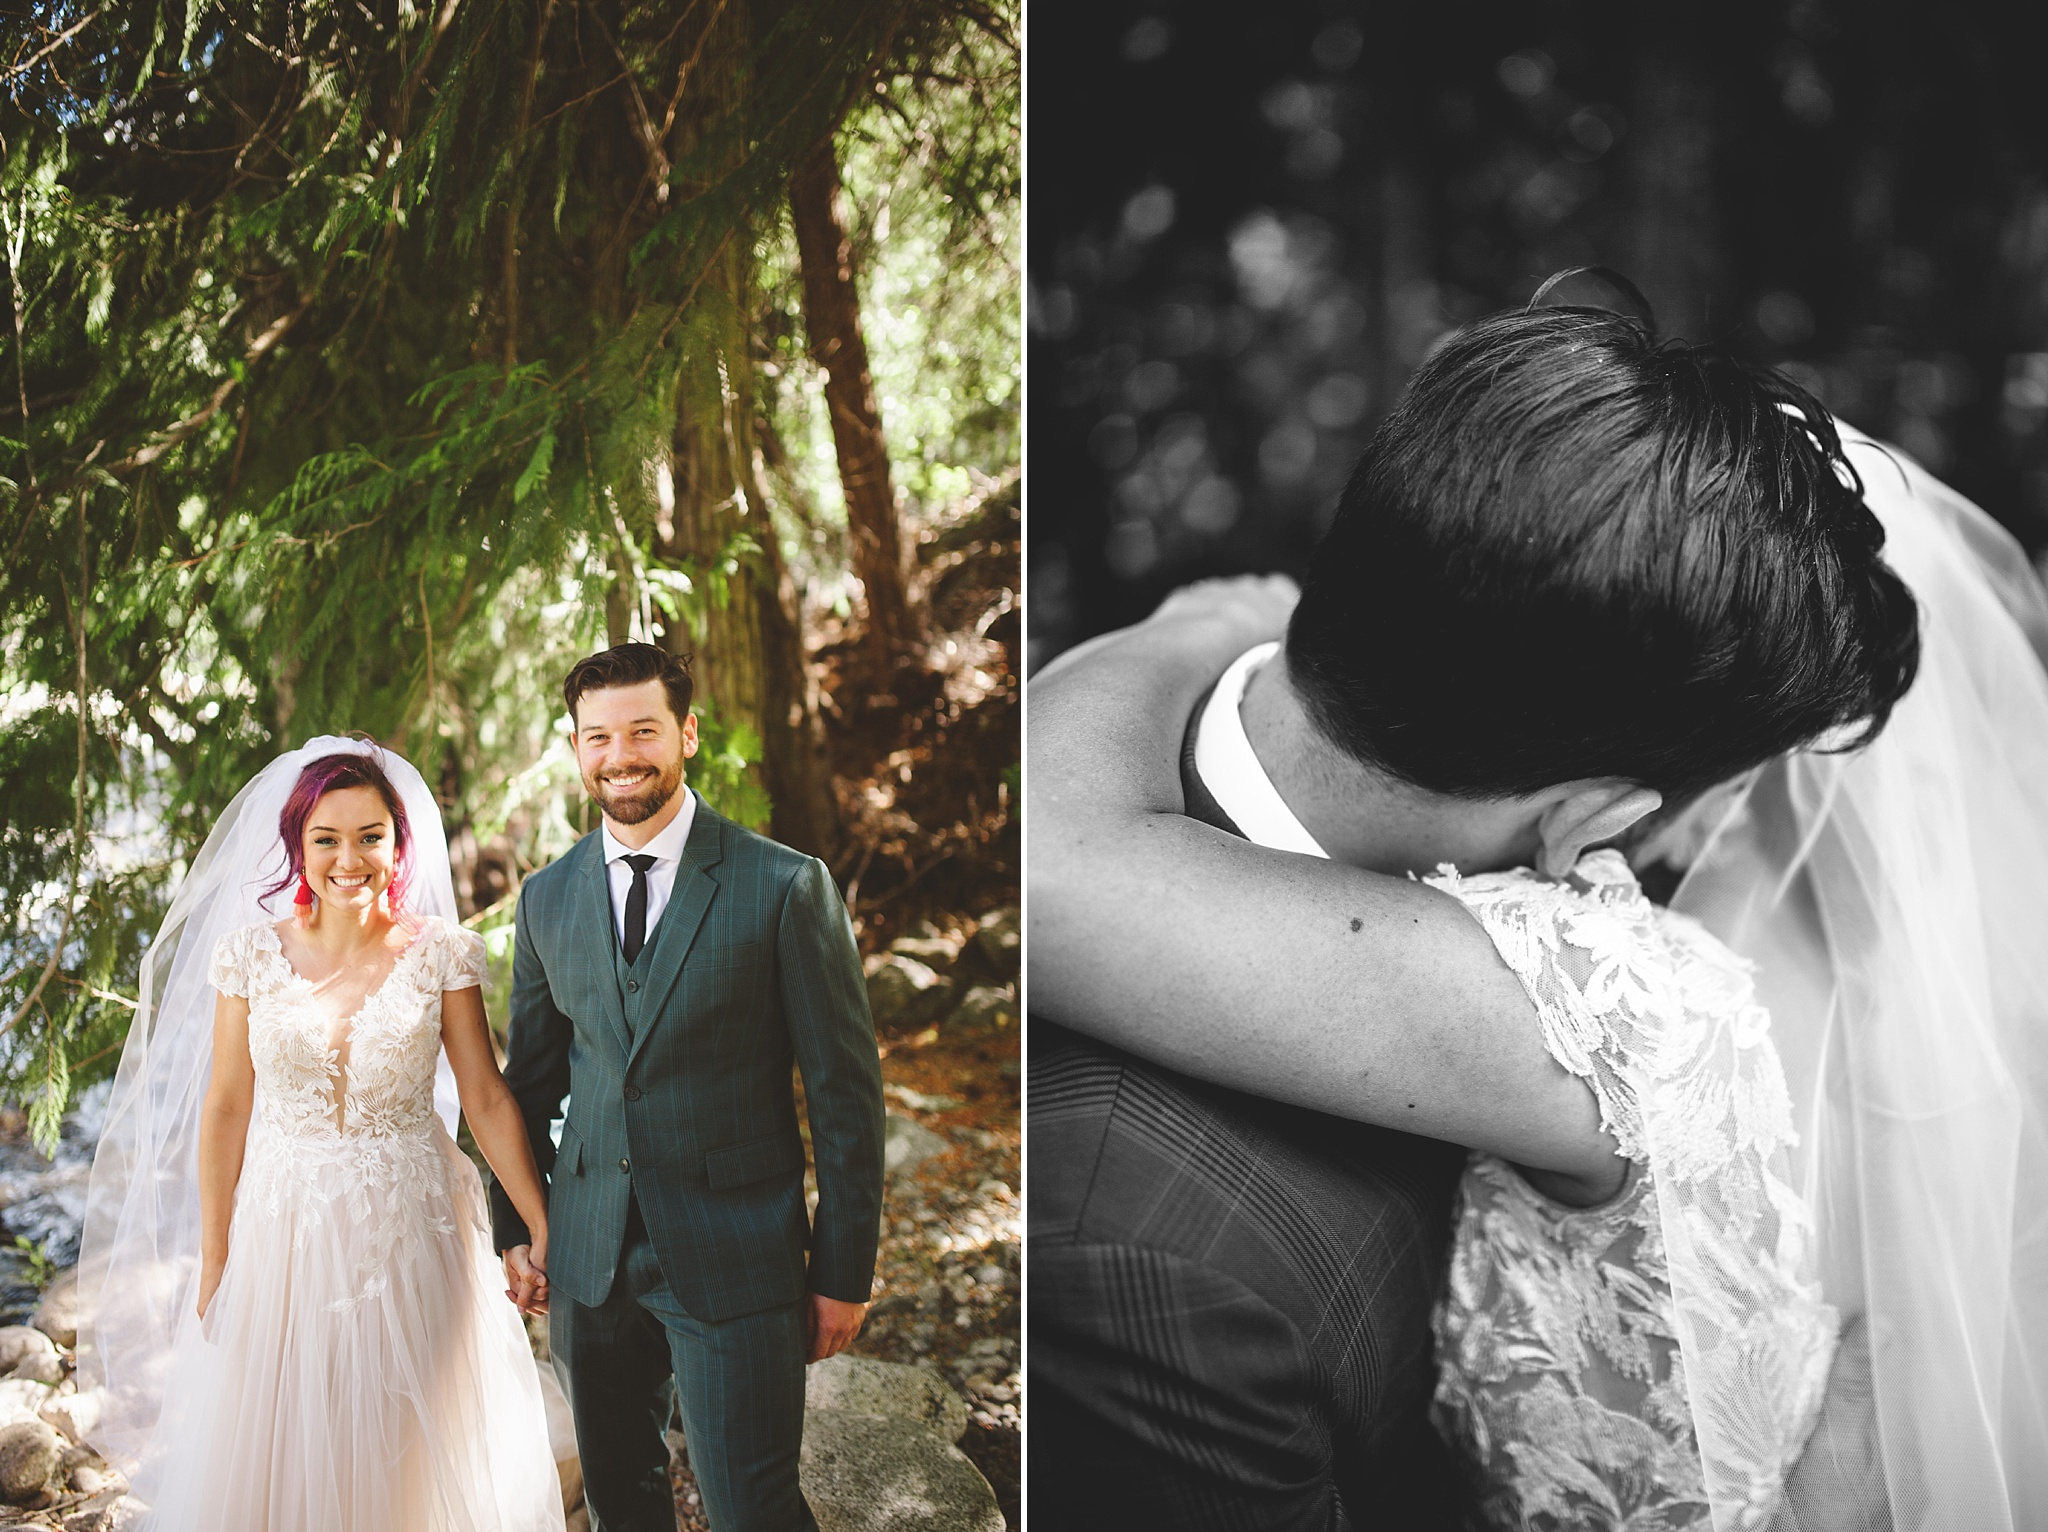 wedding portraits in woods of washington